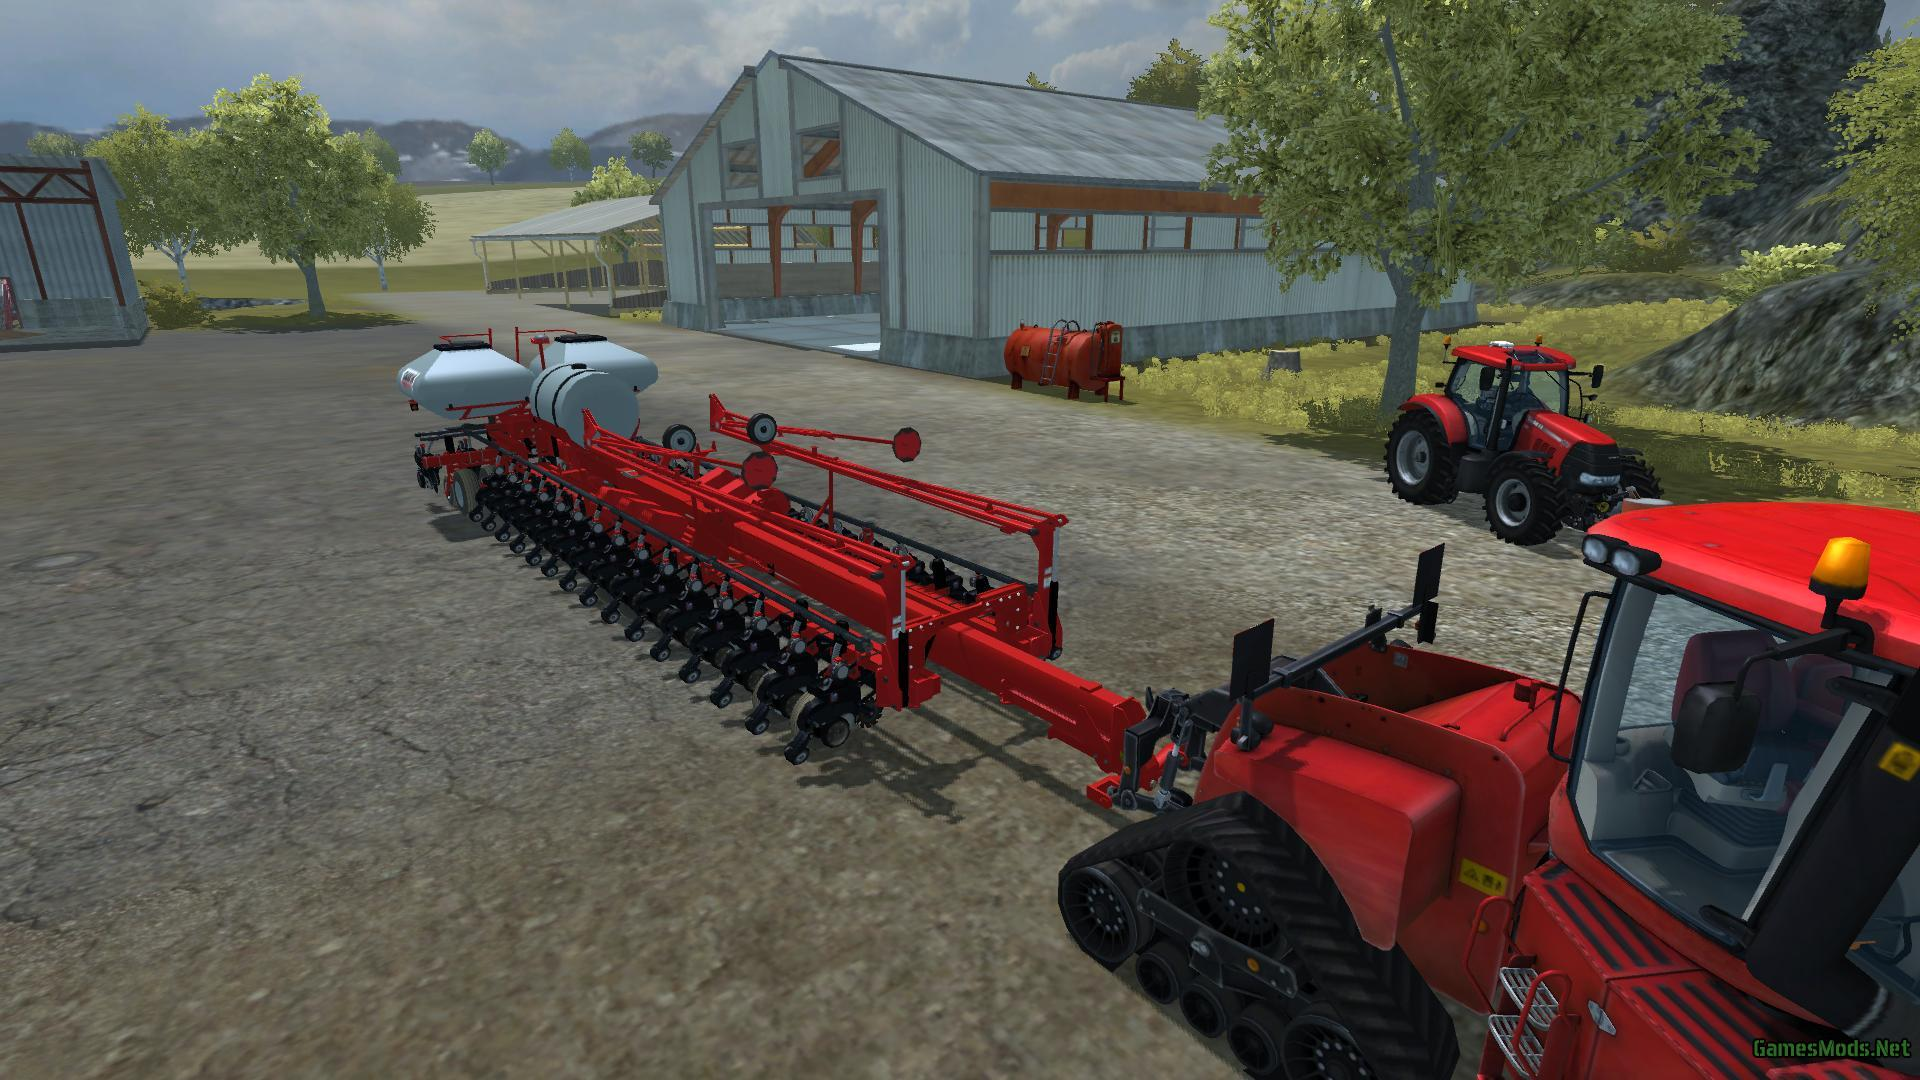 Case 1260 planter more realistic